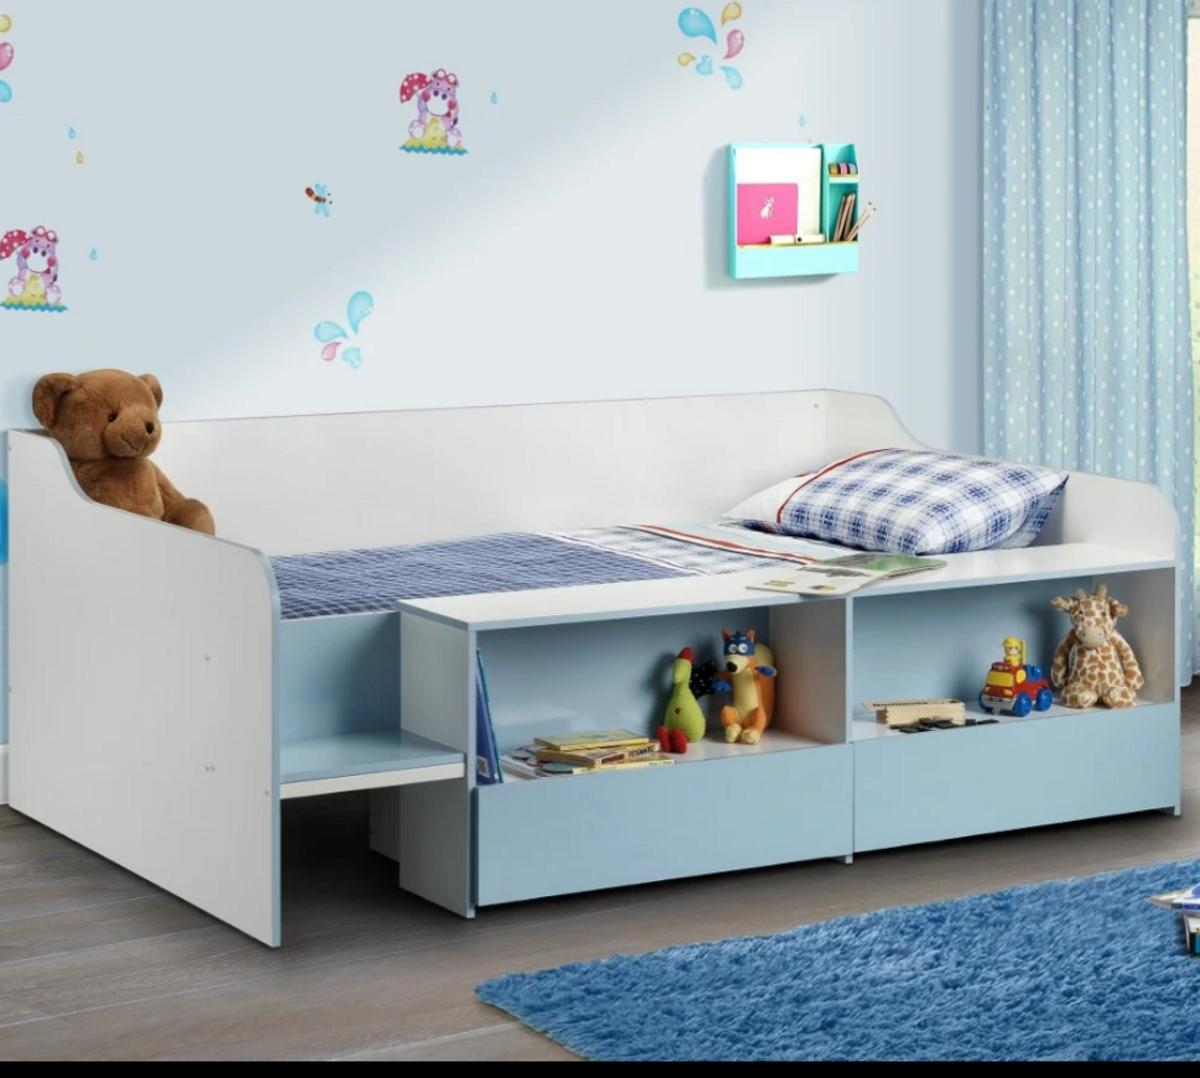 Superbly suited to snug spaces, the Stella Blue and White Wooden Kids Low Sleeper Cabin Storage Bed comes complete with two concise storage spaces for small things like toys and books. Both of these spaces are situated below a long lip that extends down most of the beds length, which could easily serve as an extended bedside table. Easy Assembly and in very good condition . MATTRESS also included